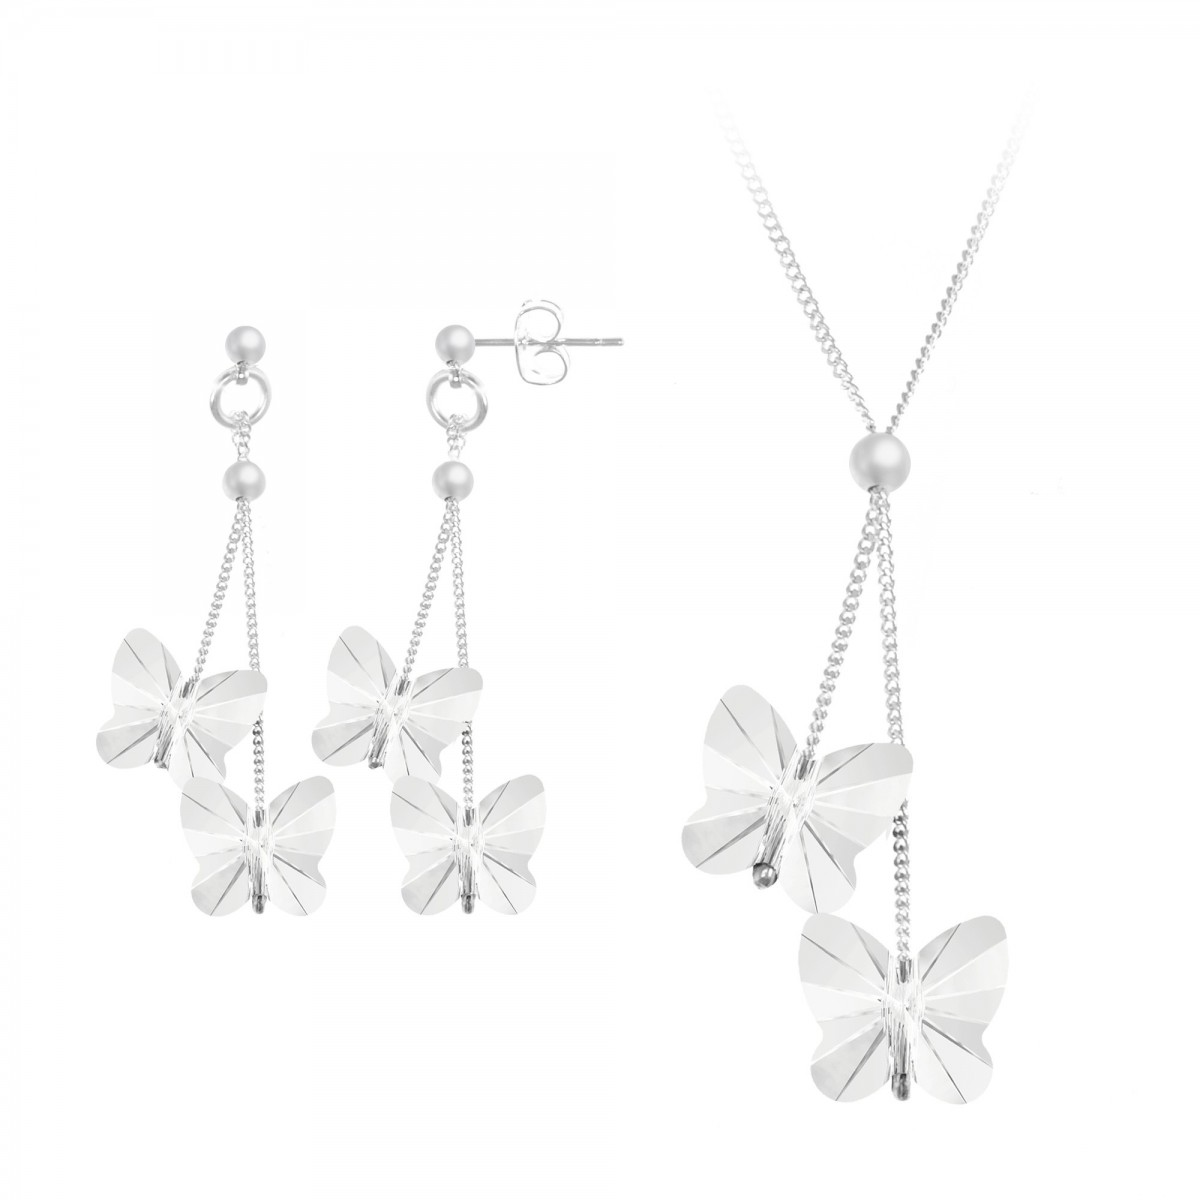 Parure collier et boucles d'oreilles papillons So Charm made with Crystal from Swarovski